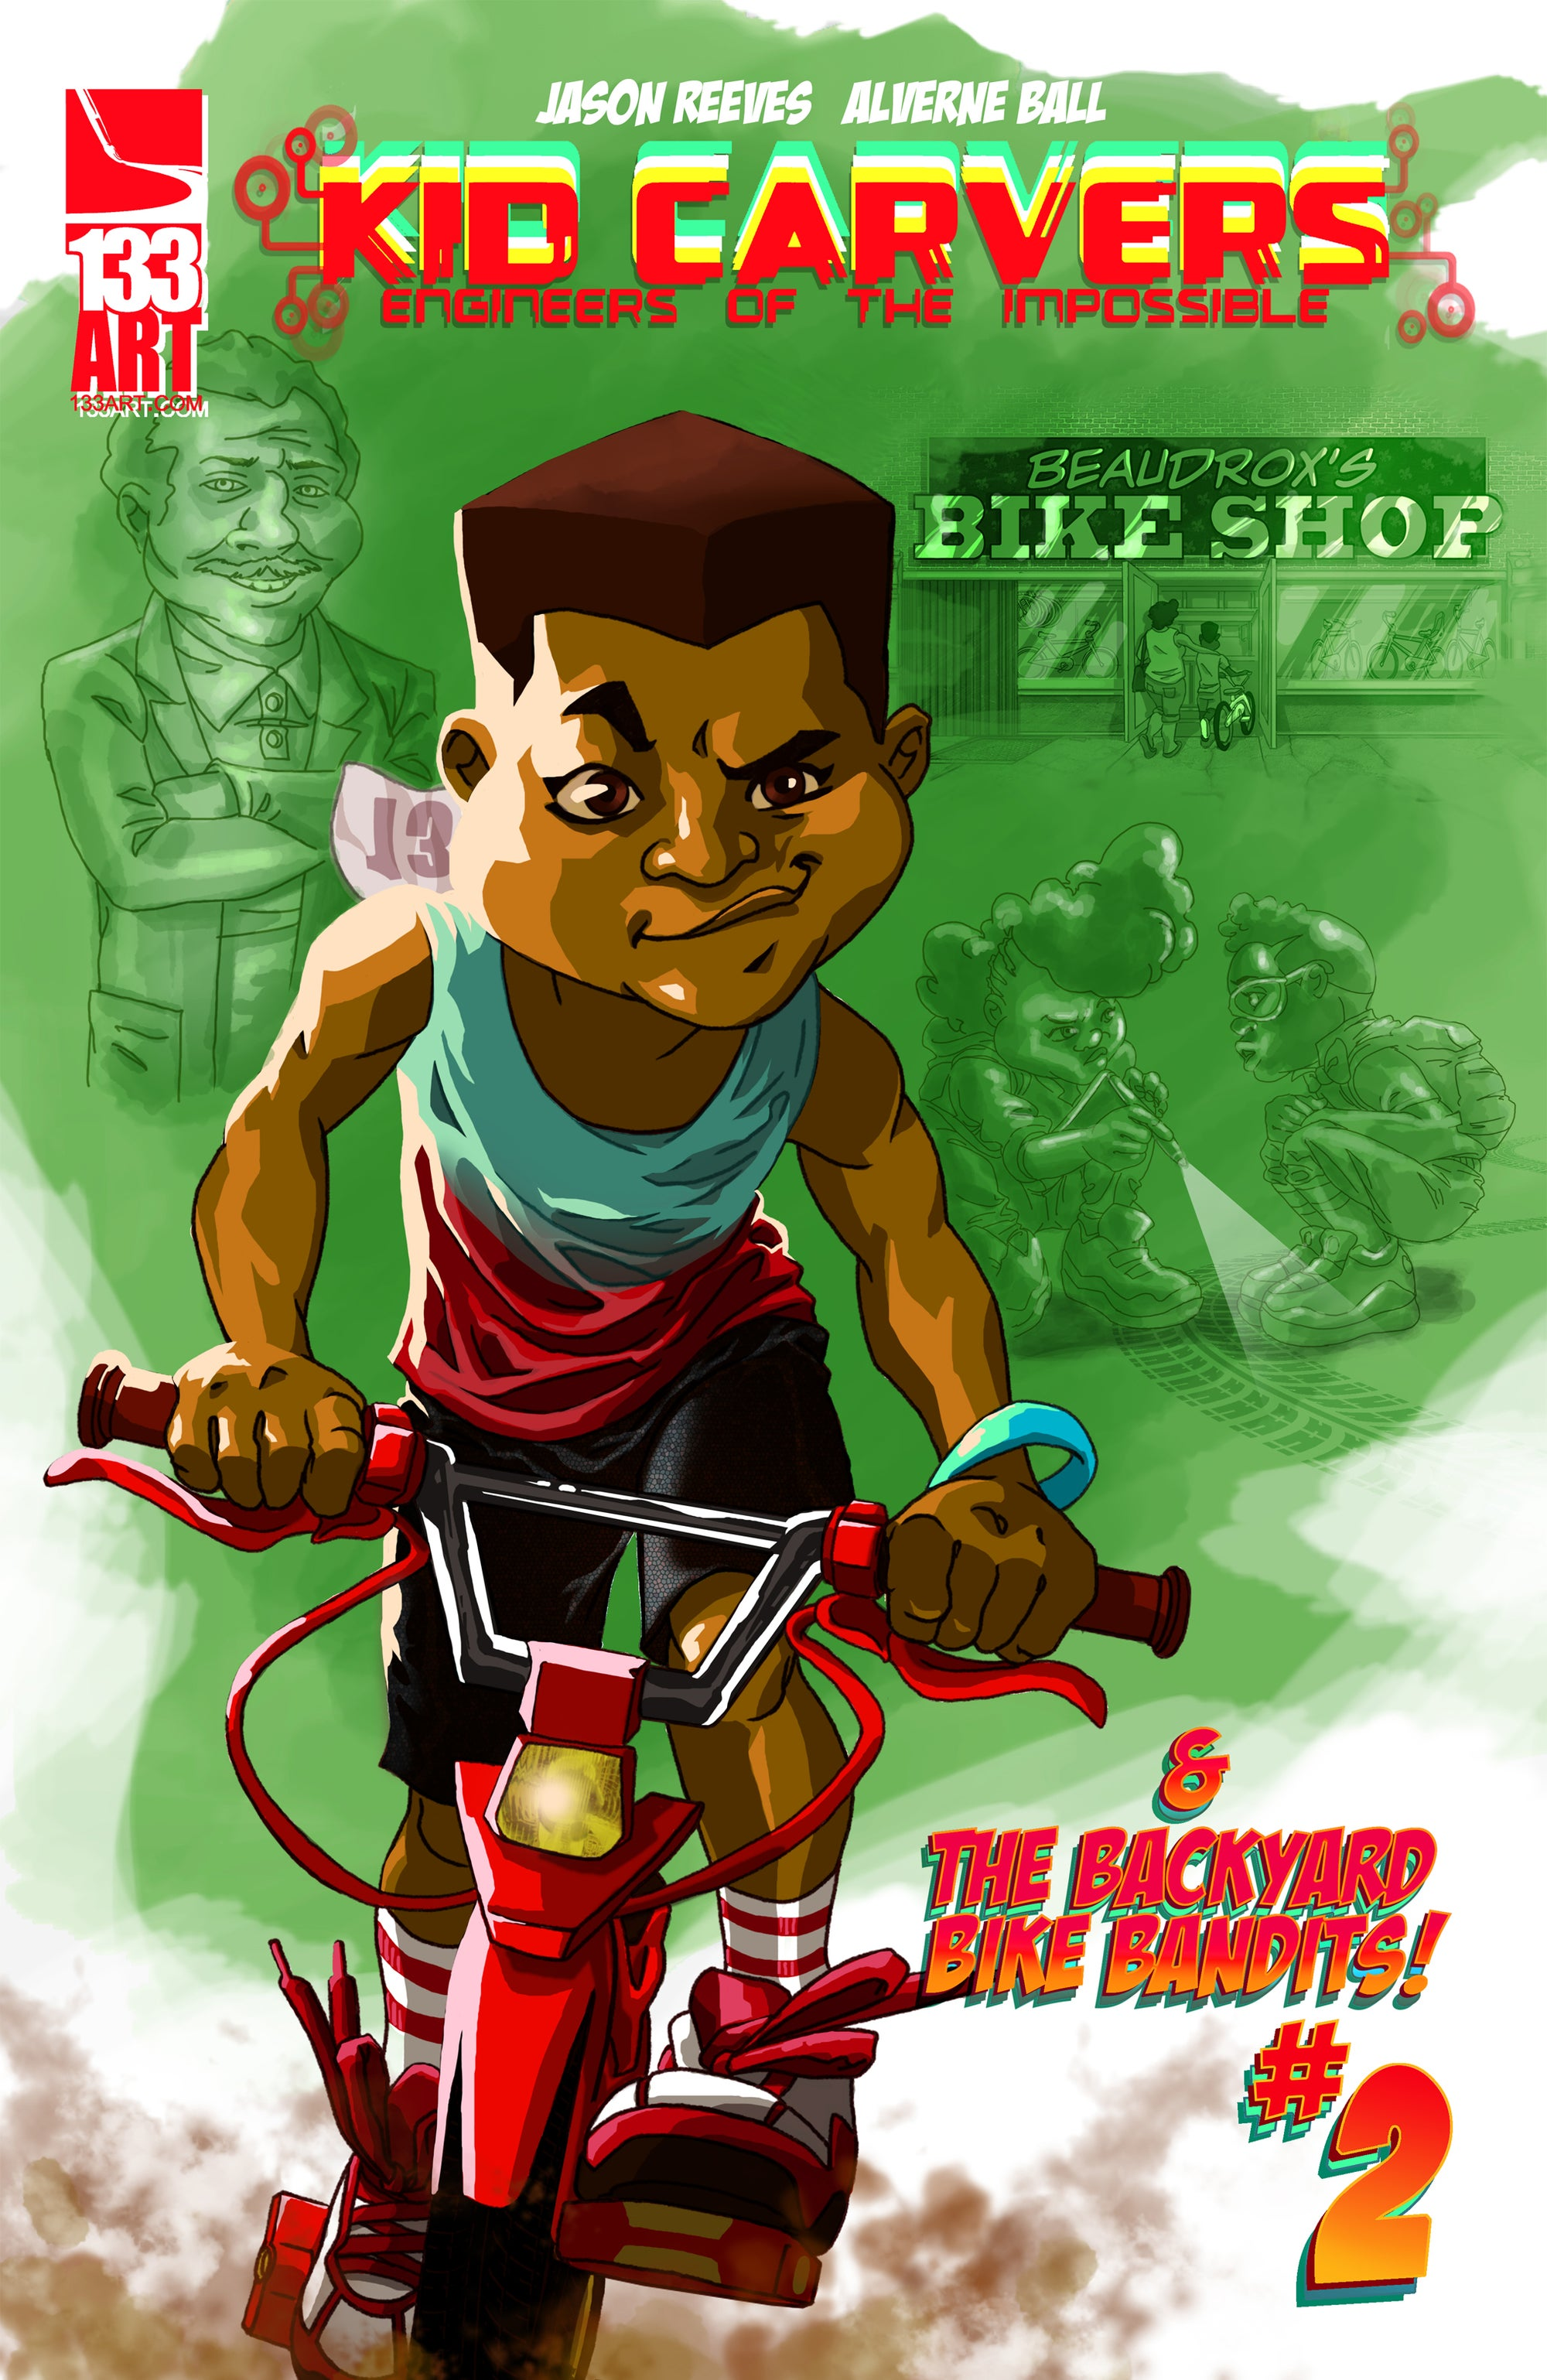 Image of KID CARVERS: and the Backyard Bike Bandits #2 [digital comic]